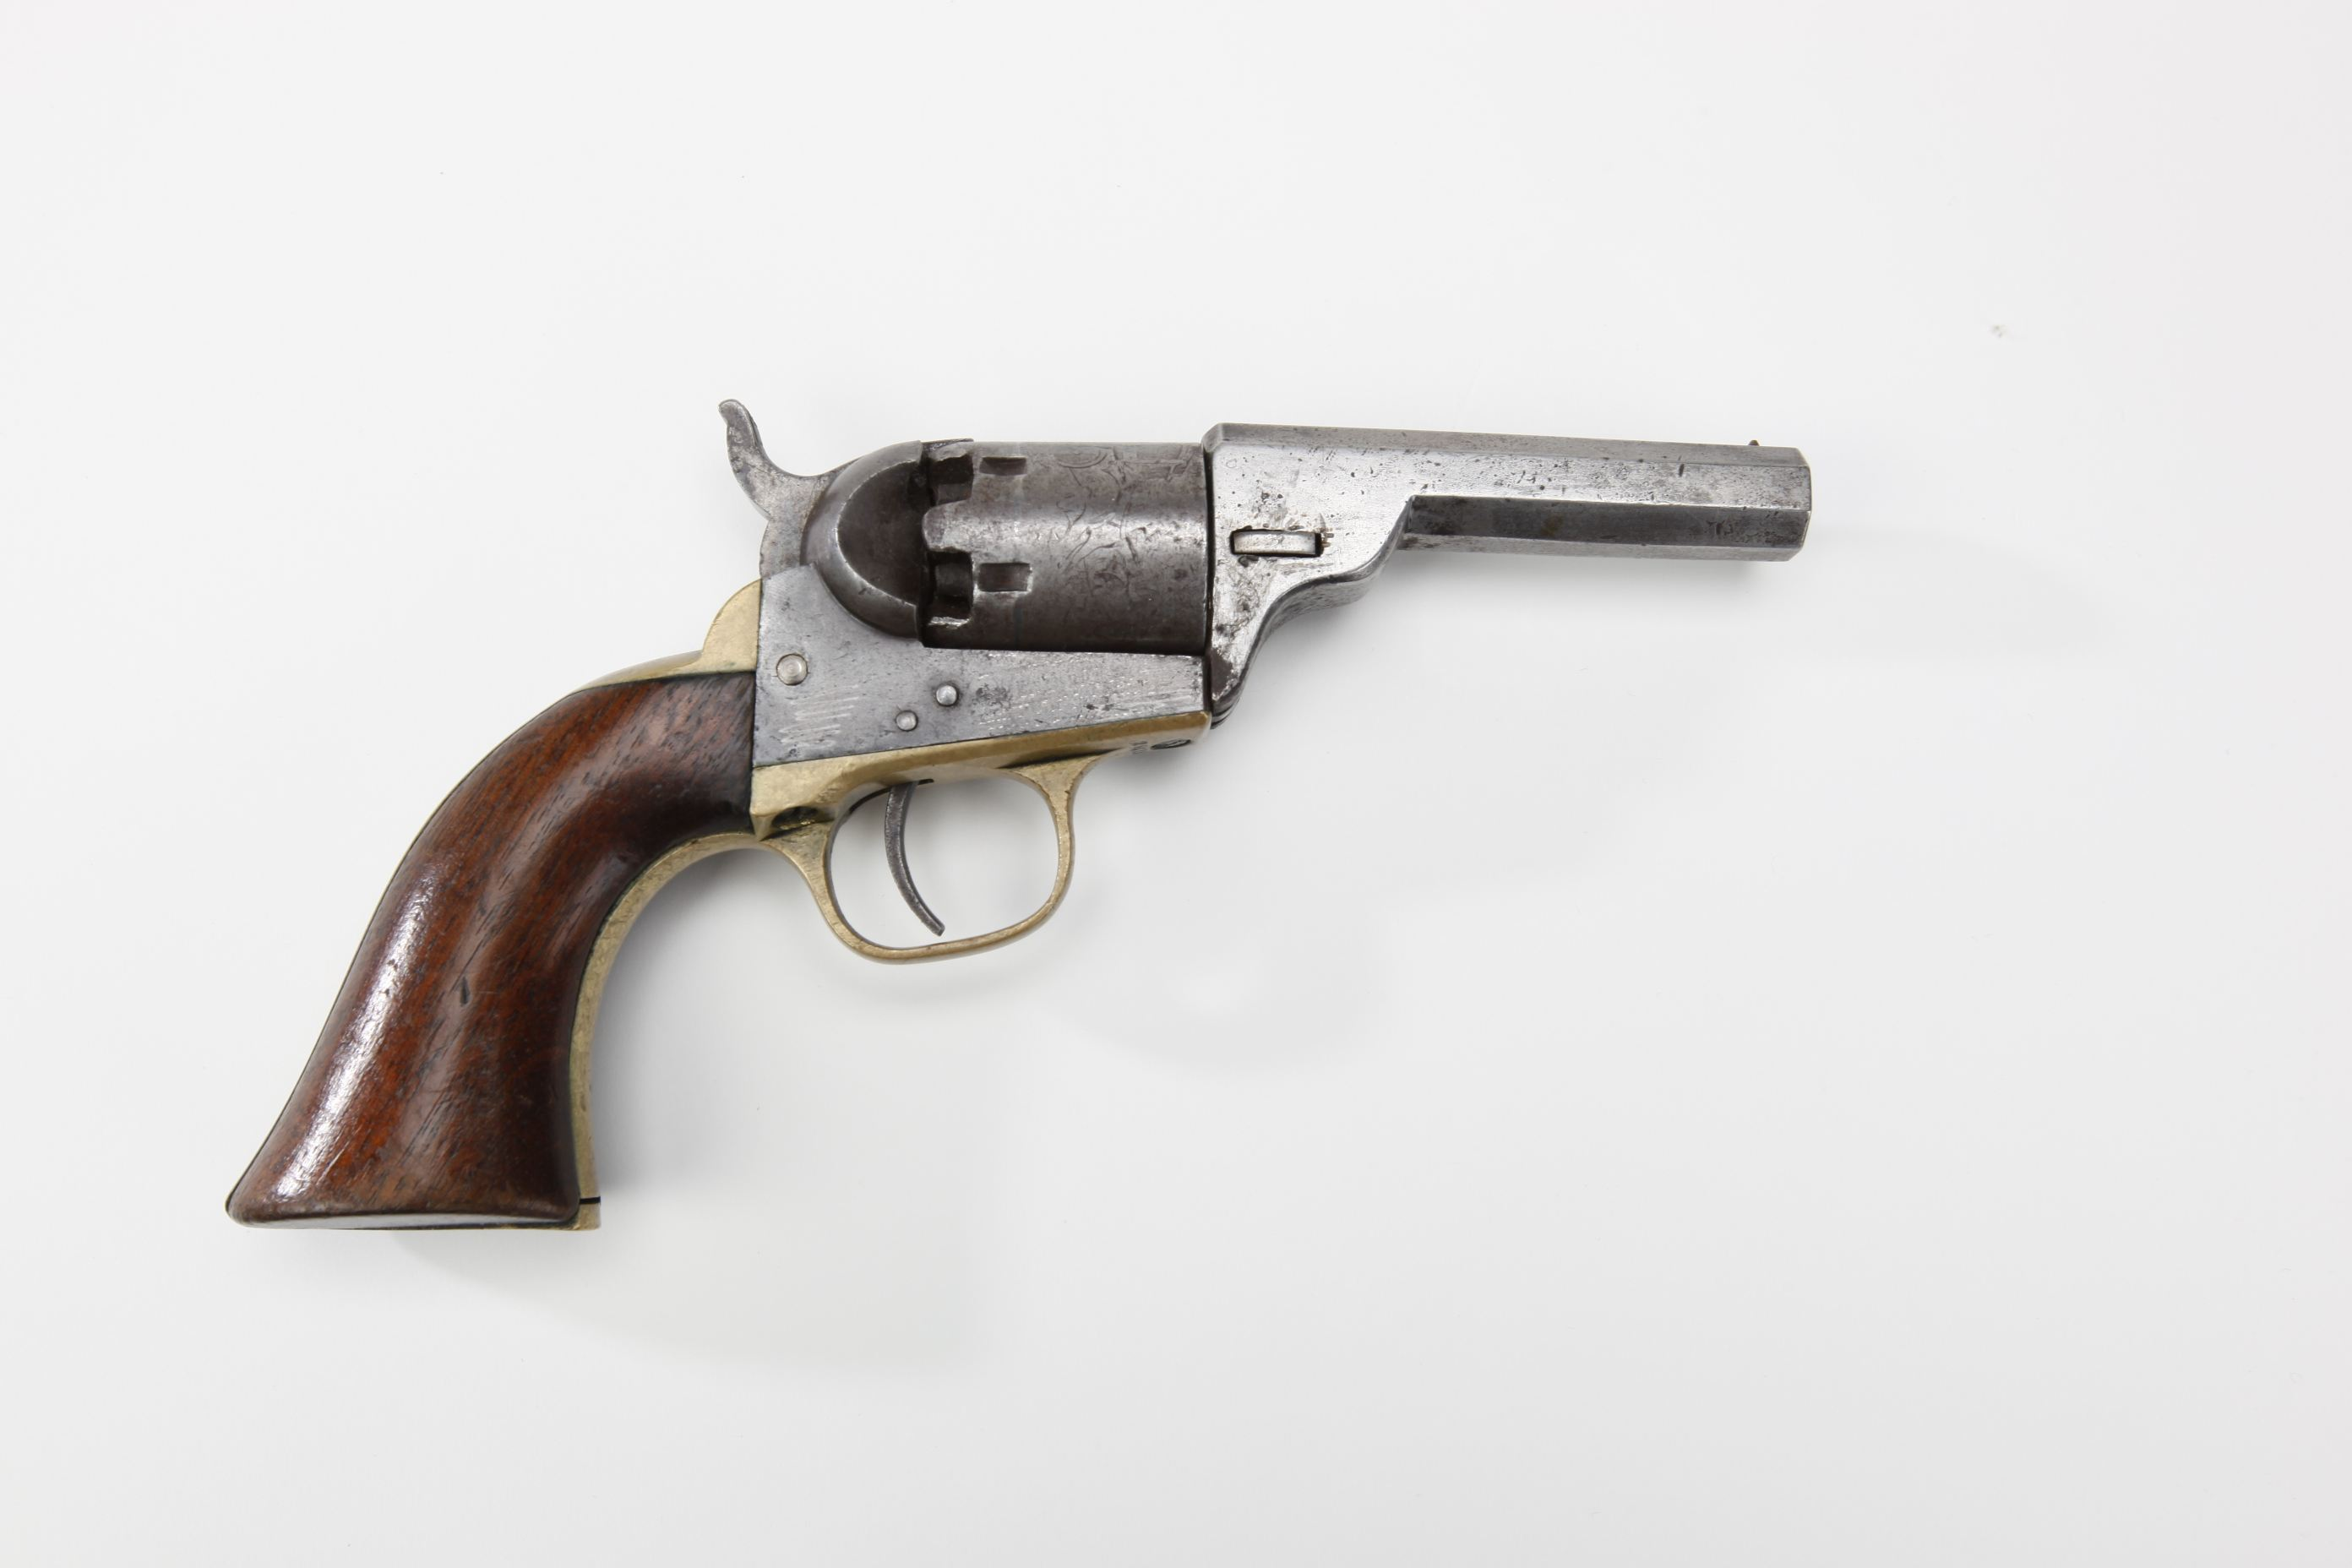 Fake Colt Wells Fargo Pocket Revolver